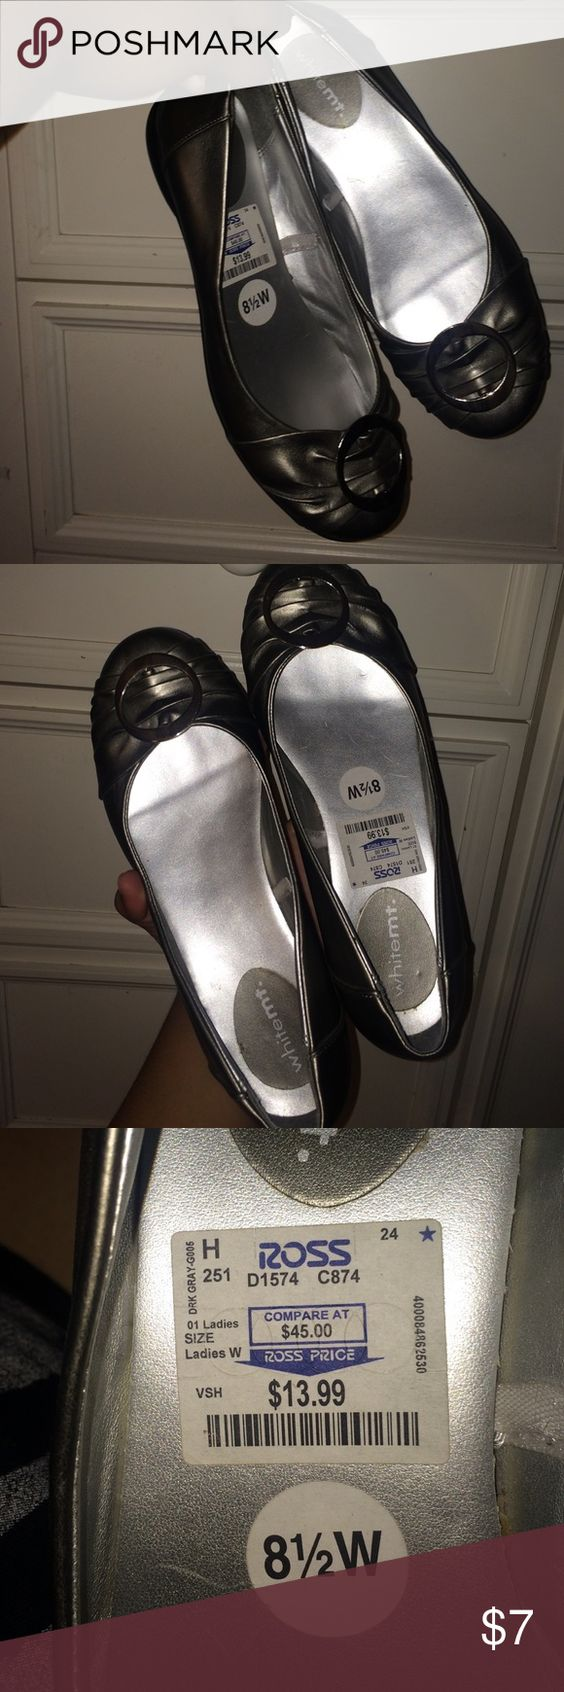 Silver flats Comfy flats to go with any outfit. Purchased from Ross. 8.5 Wide but fits size 9 White Mt Shoes Flats & Loafers